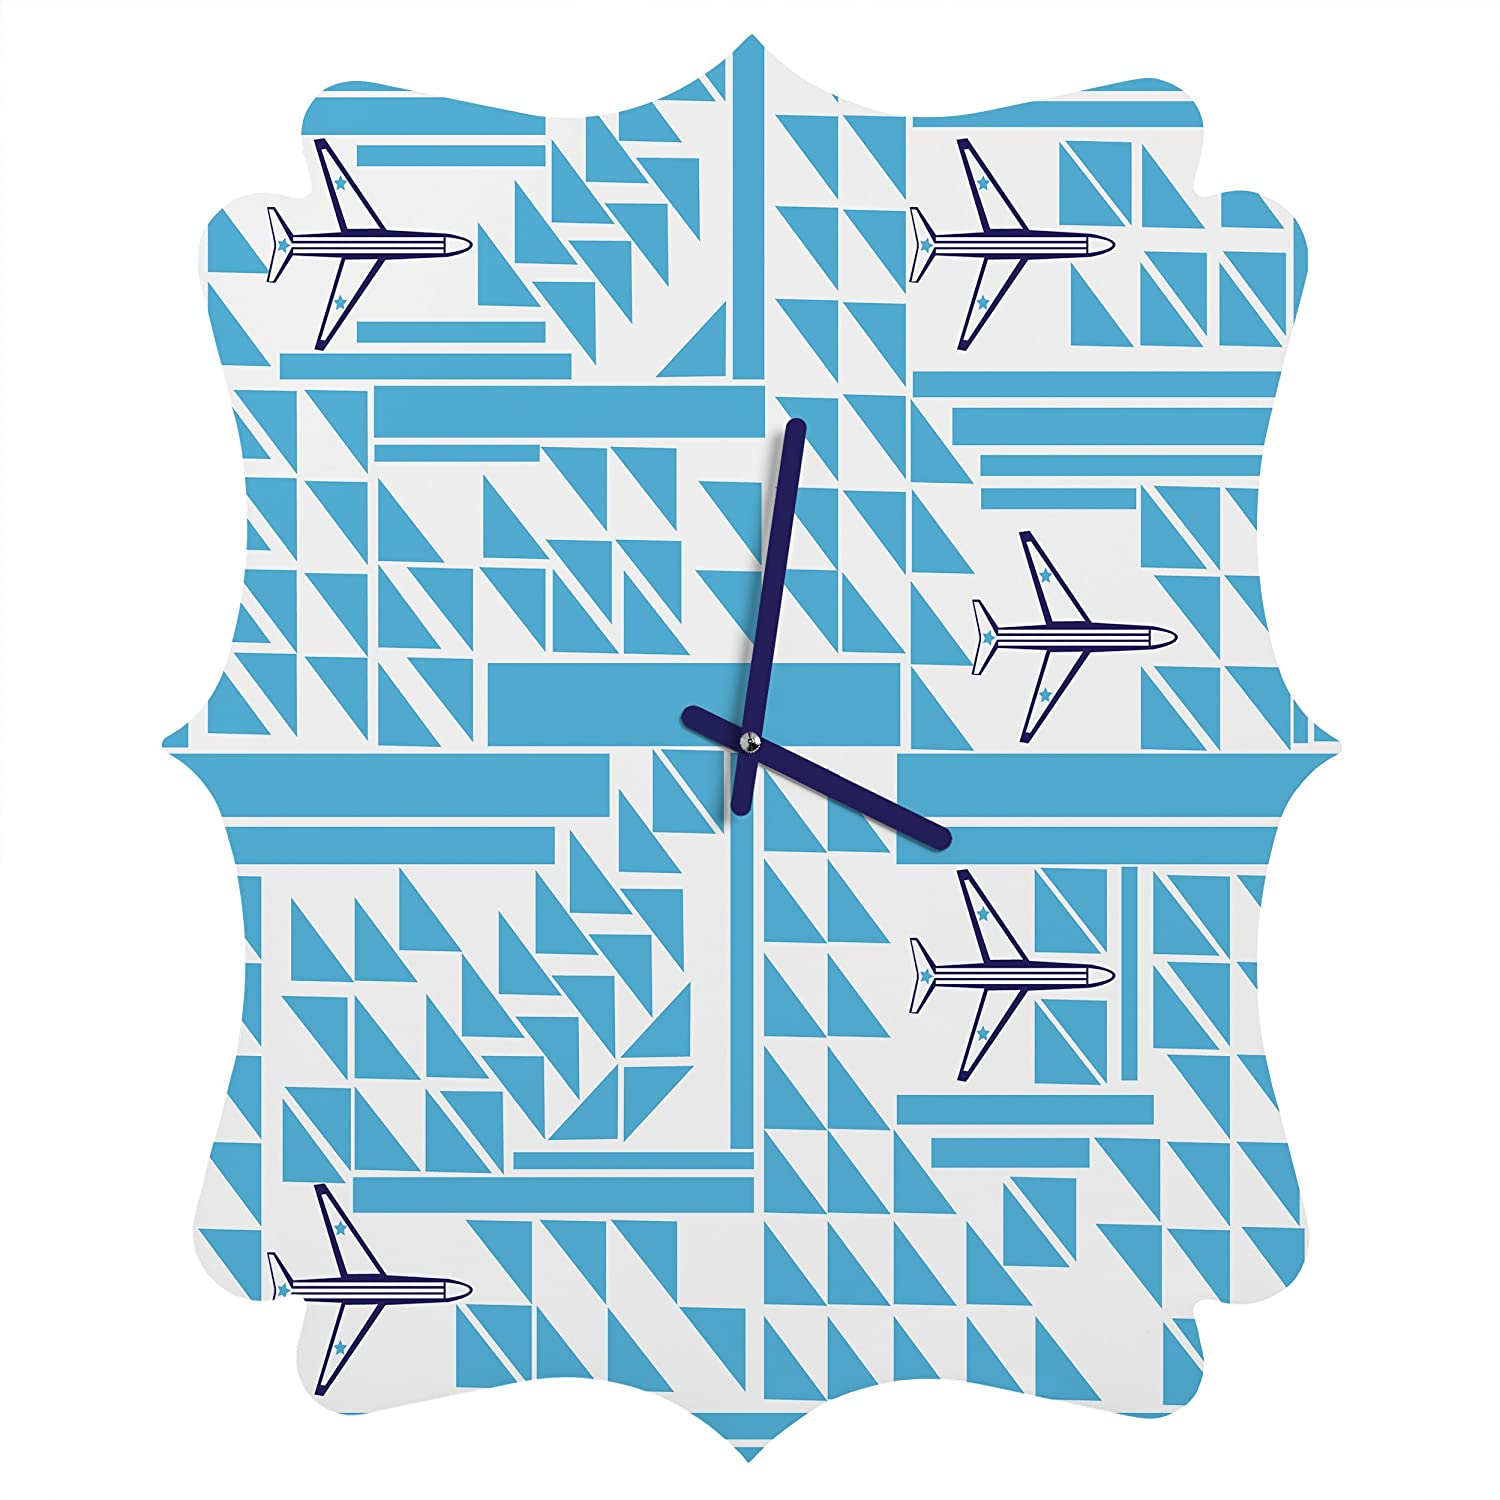 Deny Designs Vy La, Airplanes and Triangles, Round Clock, Round, 12 12 50403-roucls